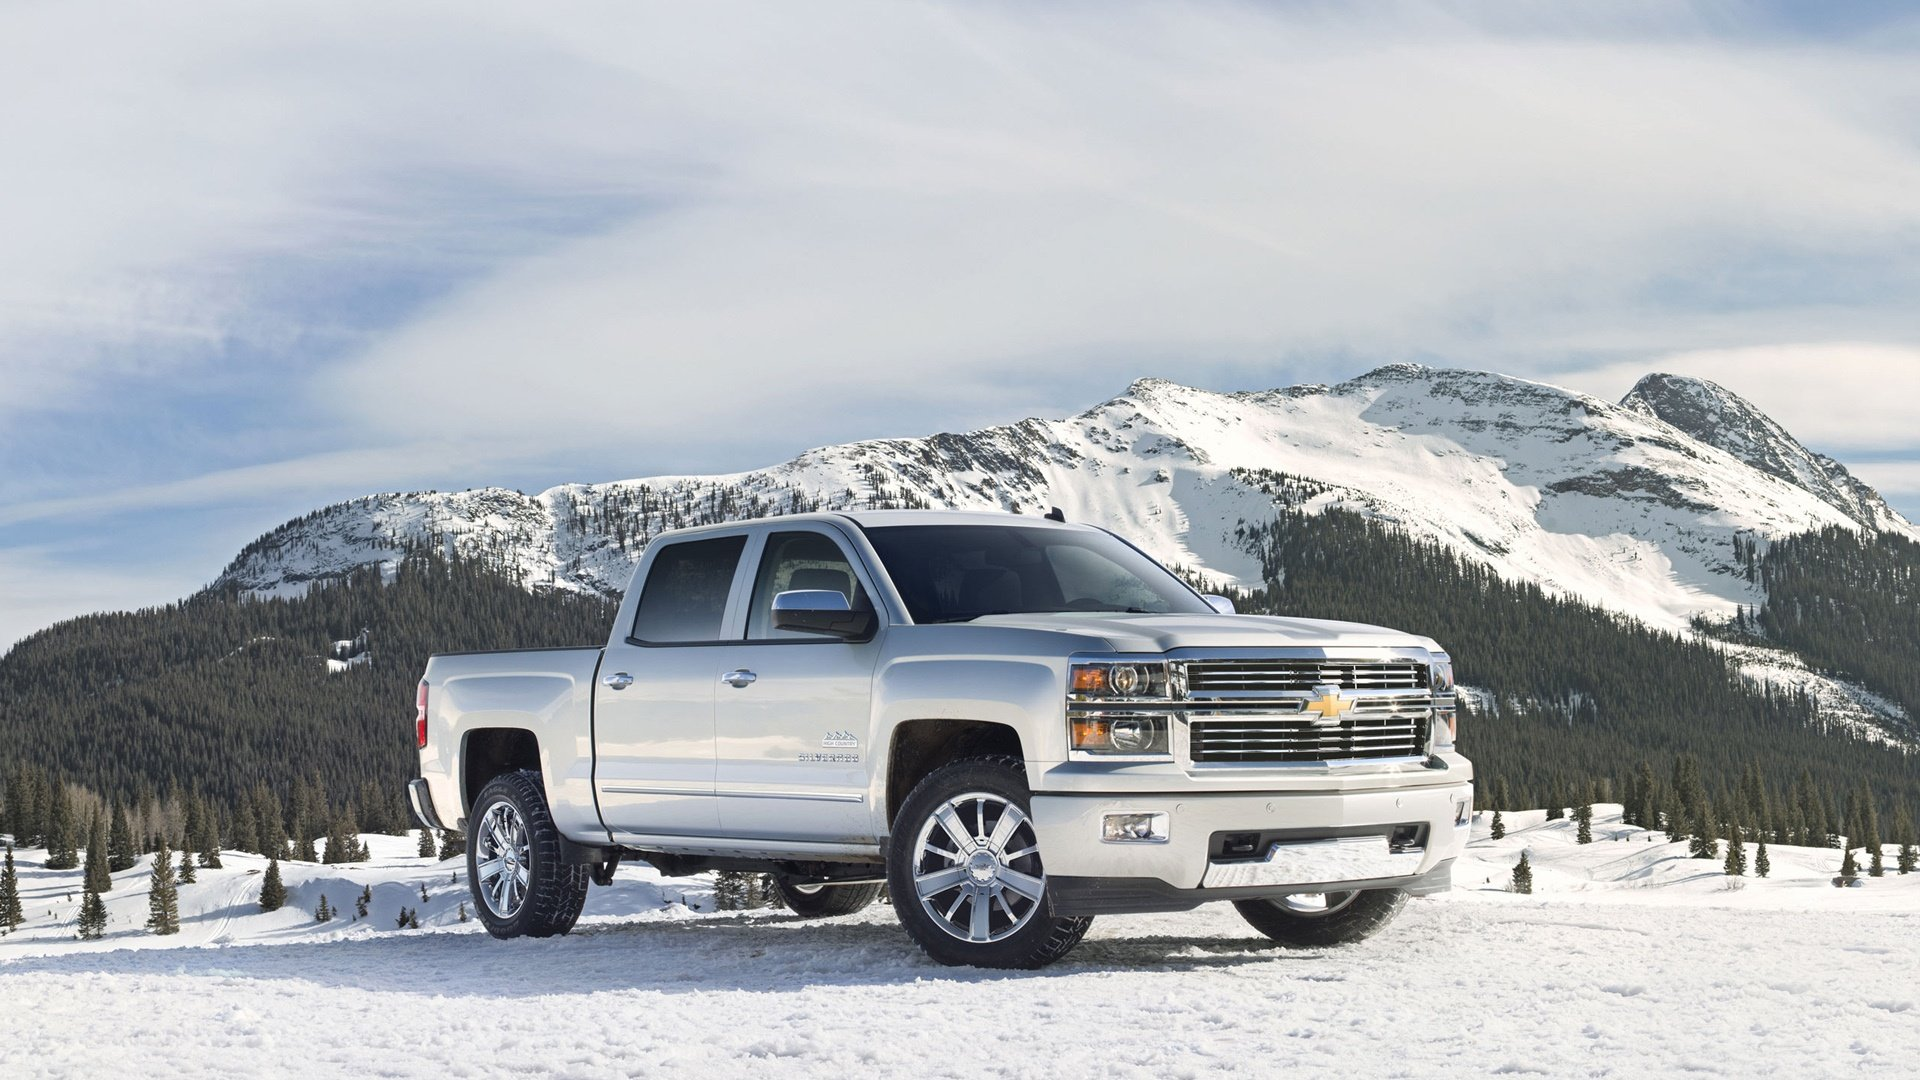 2014 Chevrolet Silverado Wallpaper HD Car Wallpapers 1920x1080